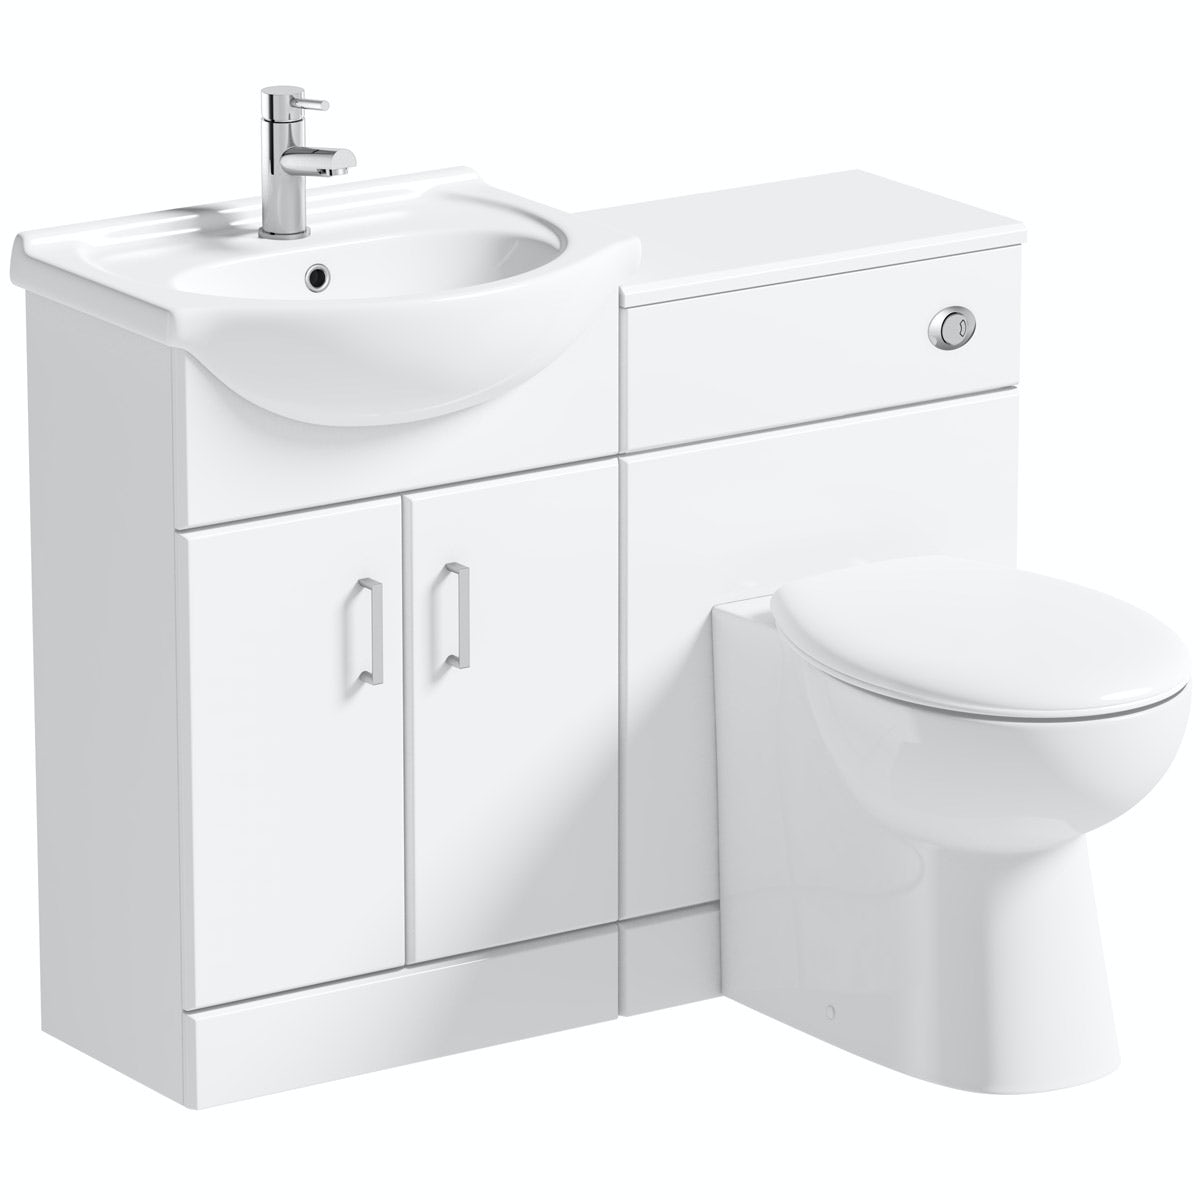 Orchard Eden white 1040 combination with Clarity back to wall toilet